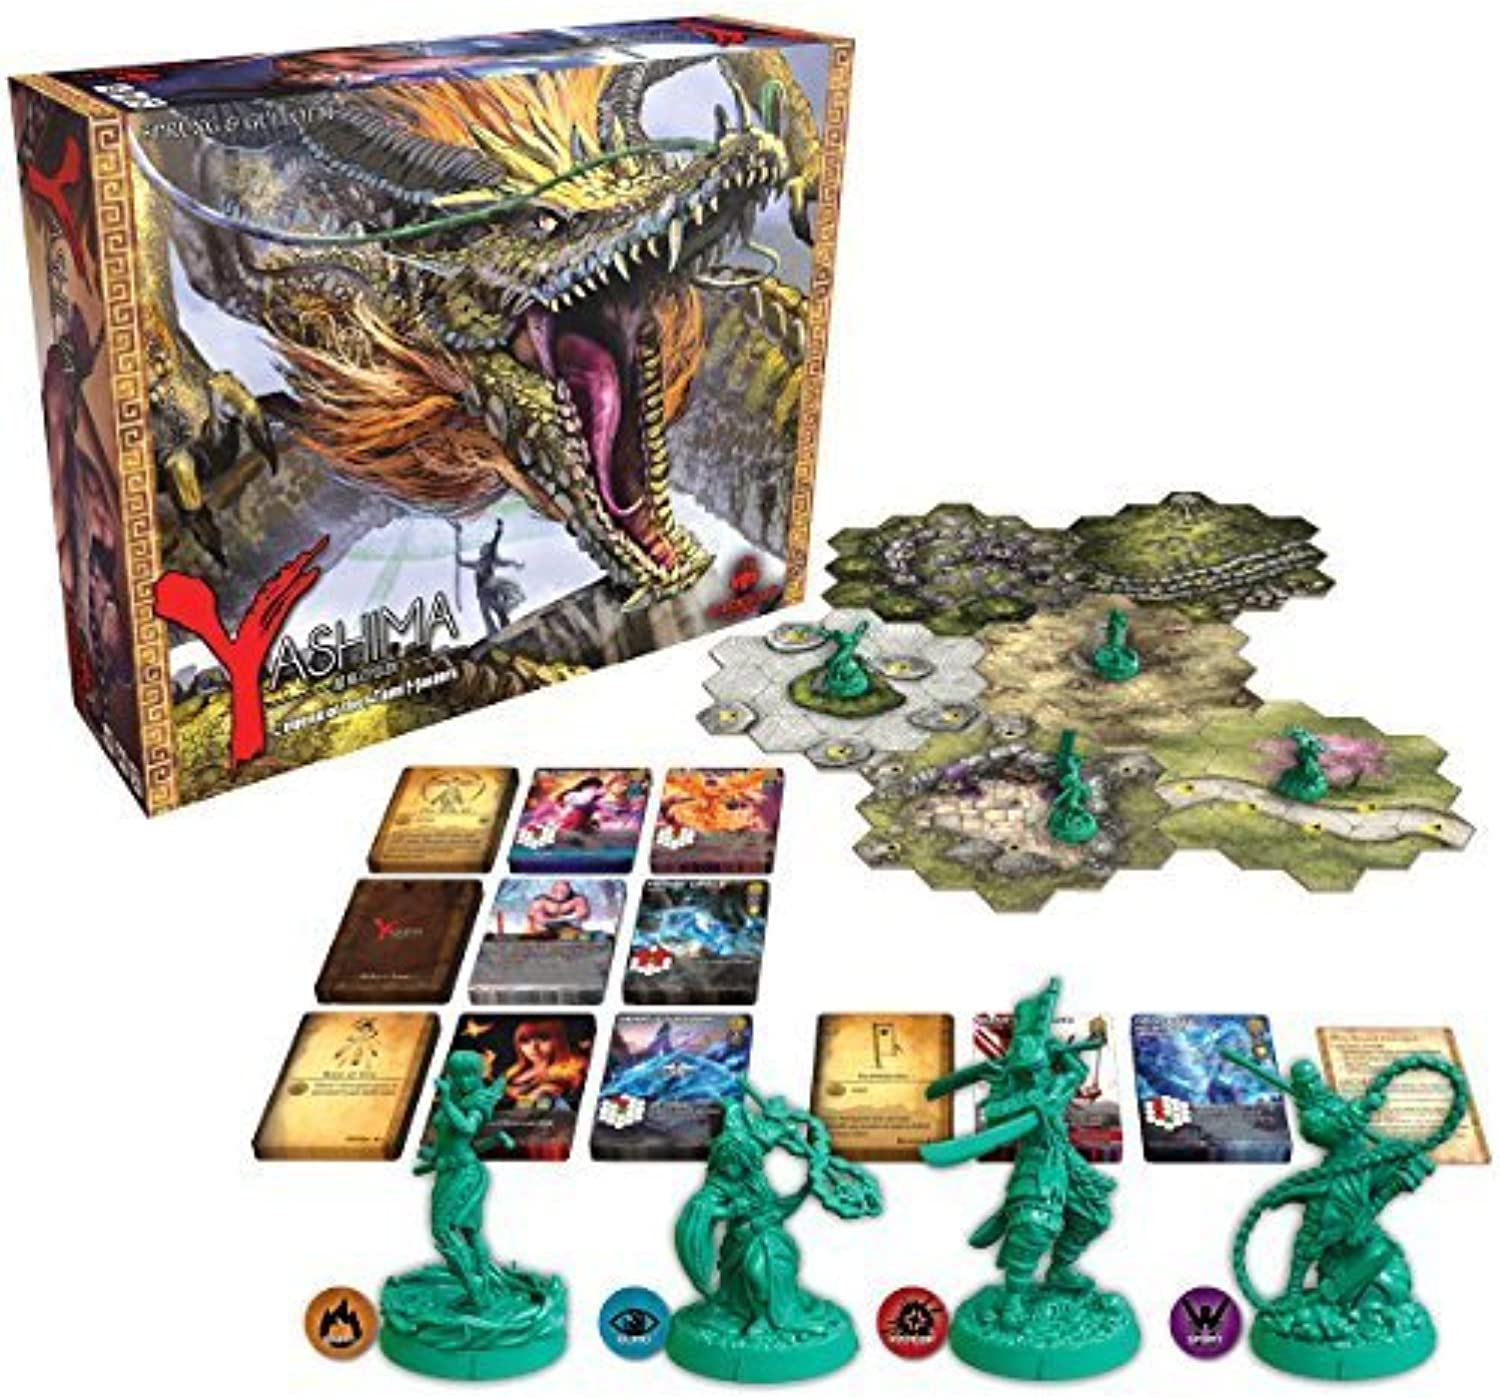 Yashima Legend of the Kami Masters Board Game by Publisher Services Inc (PSI)